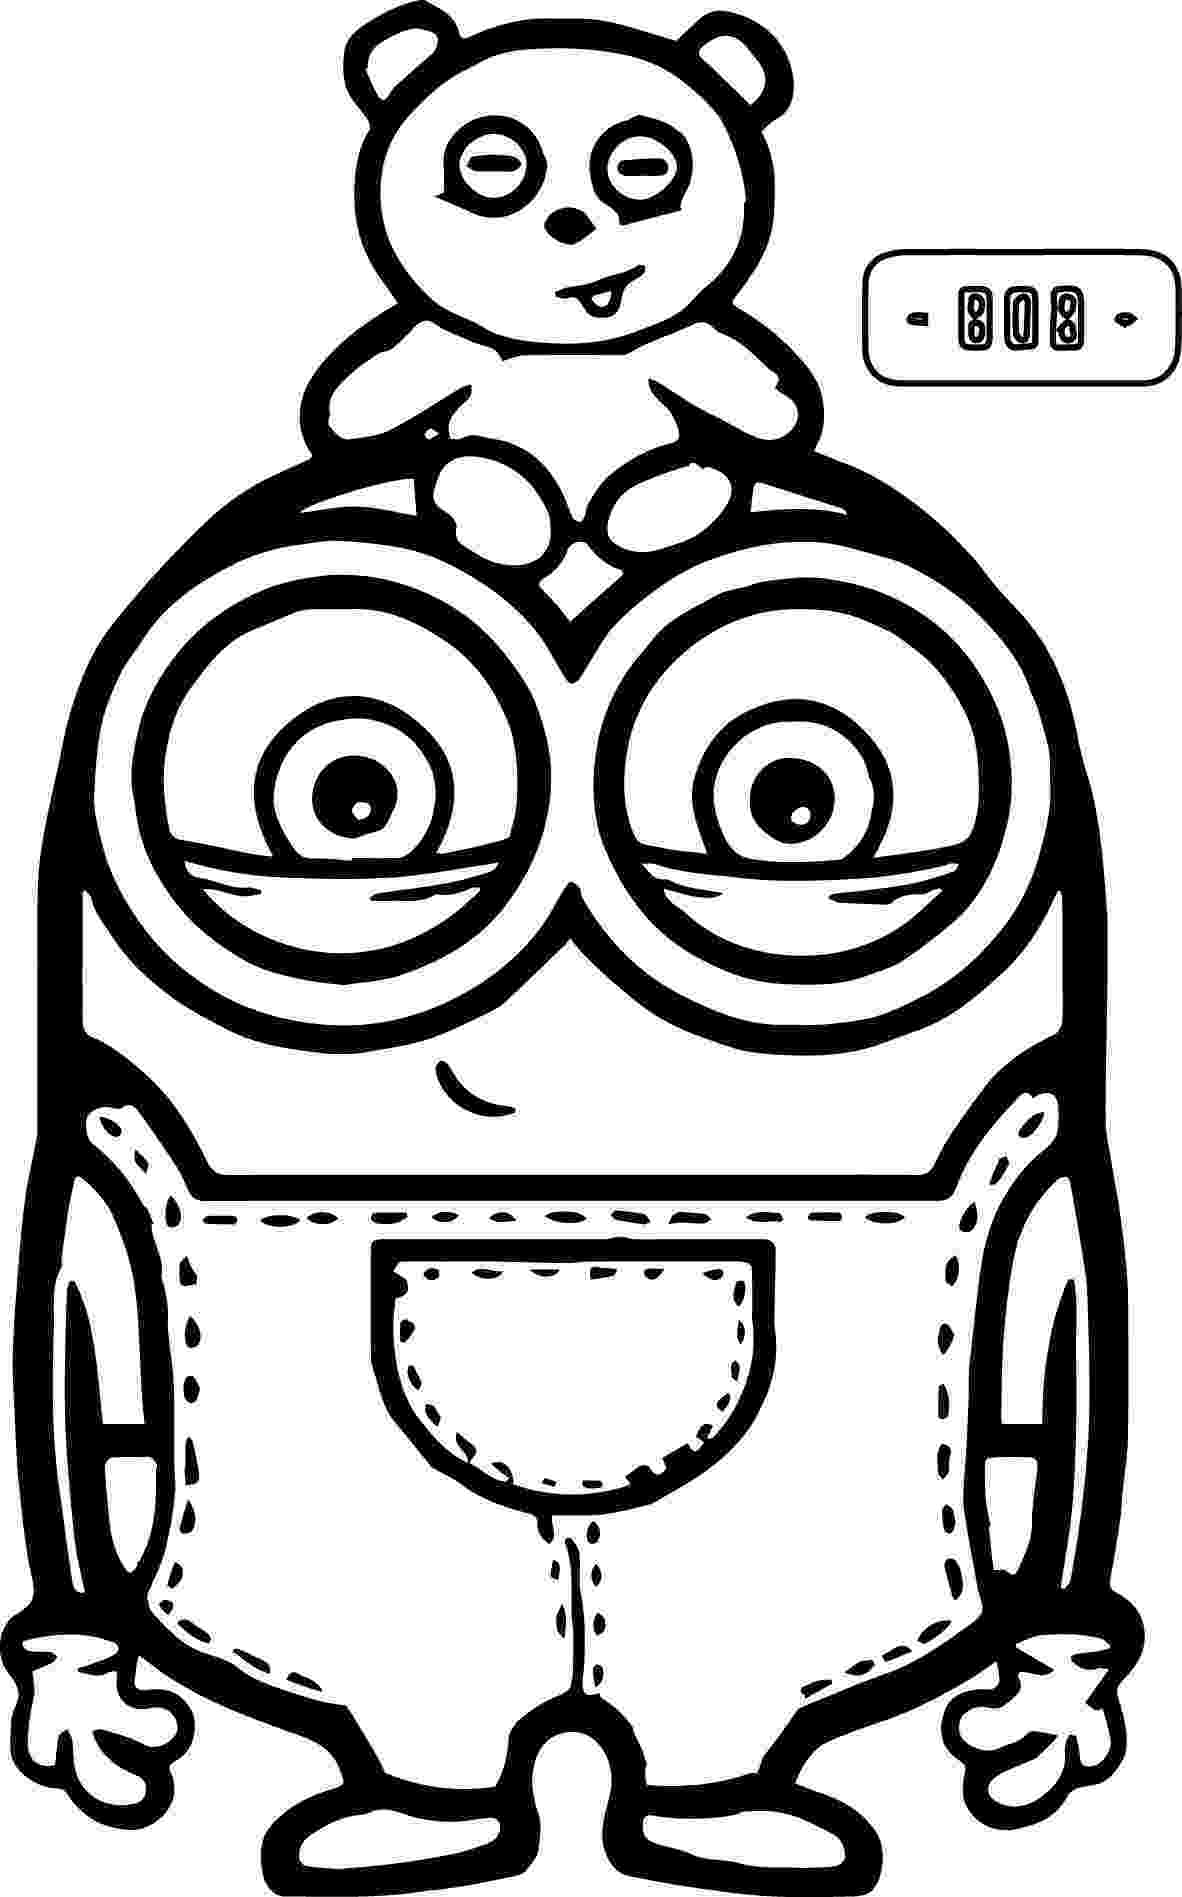 printable colouring pages minions cute bob and bear minions coloring page minion coloring colouring minions pages printable